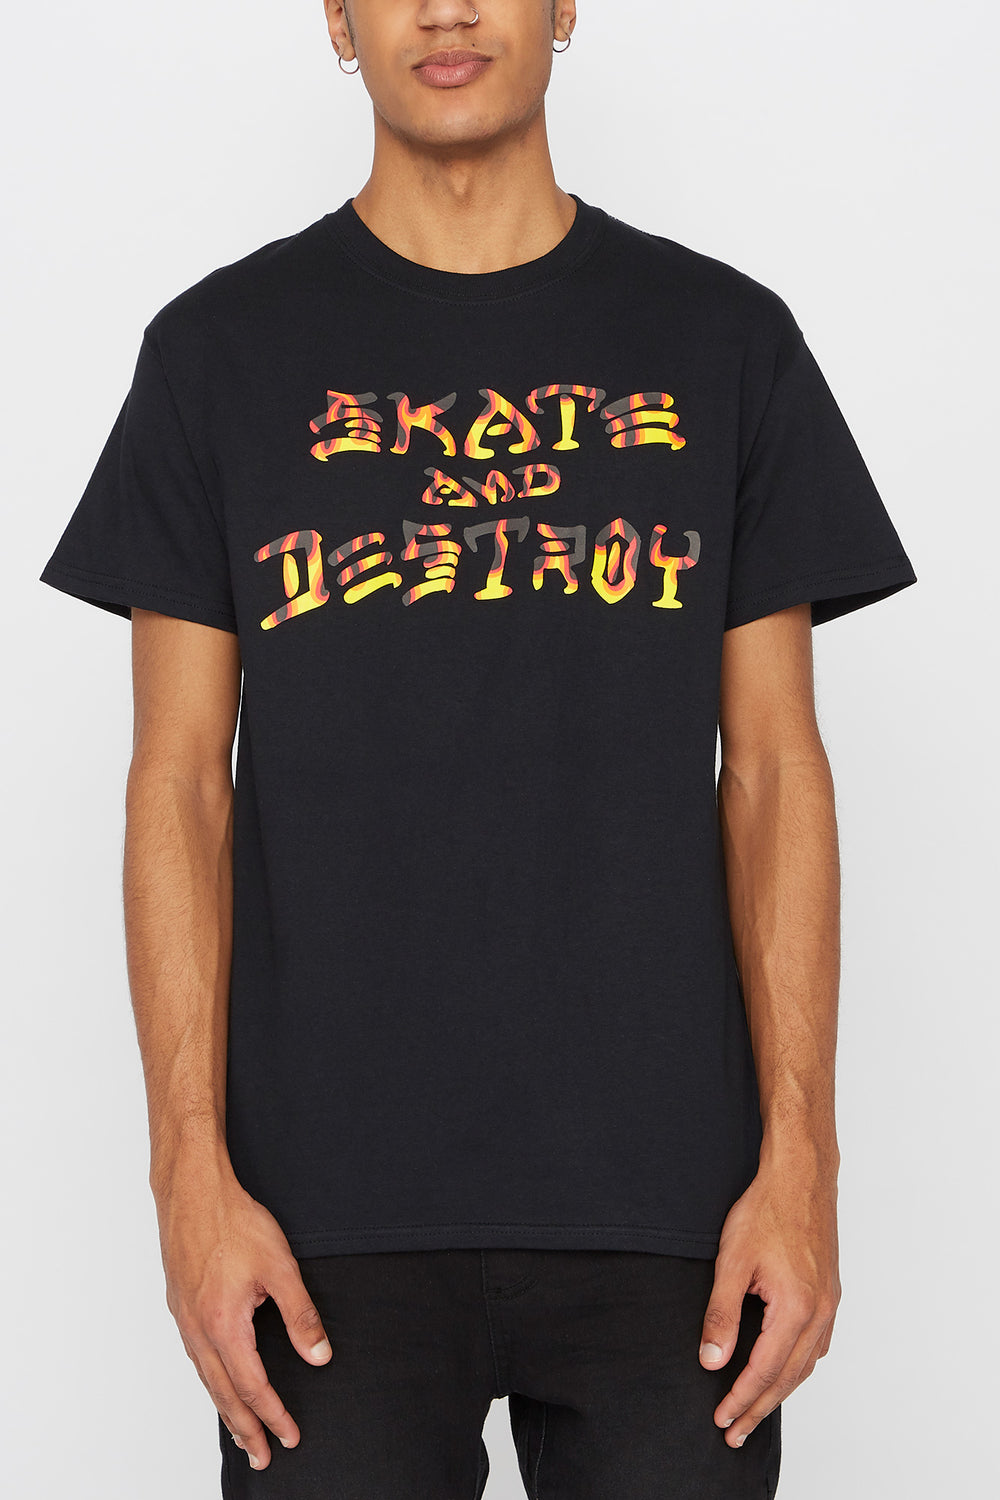 T-Shirt Skate and Destroy Thrasher Homme Noir